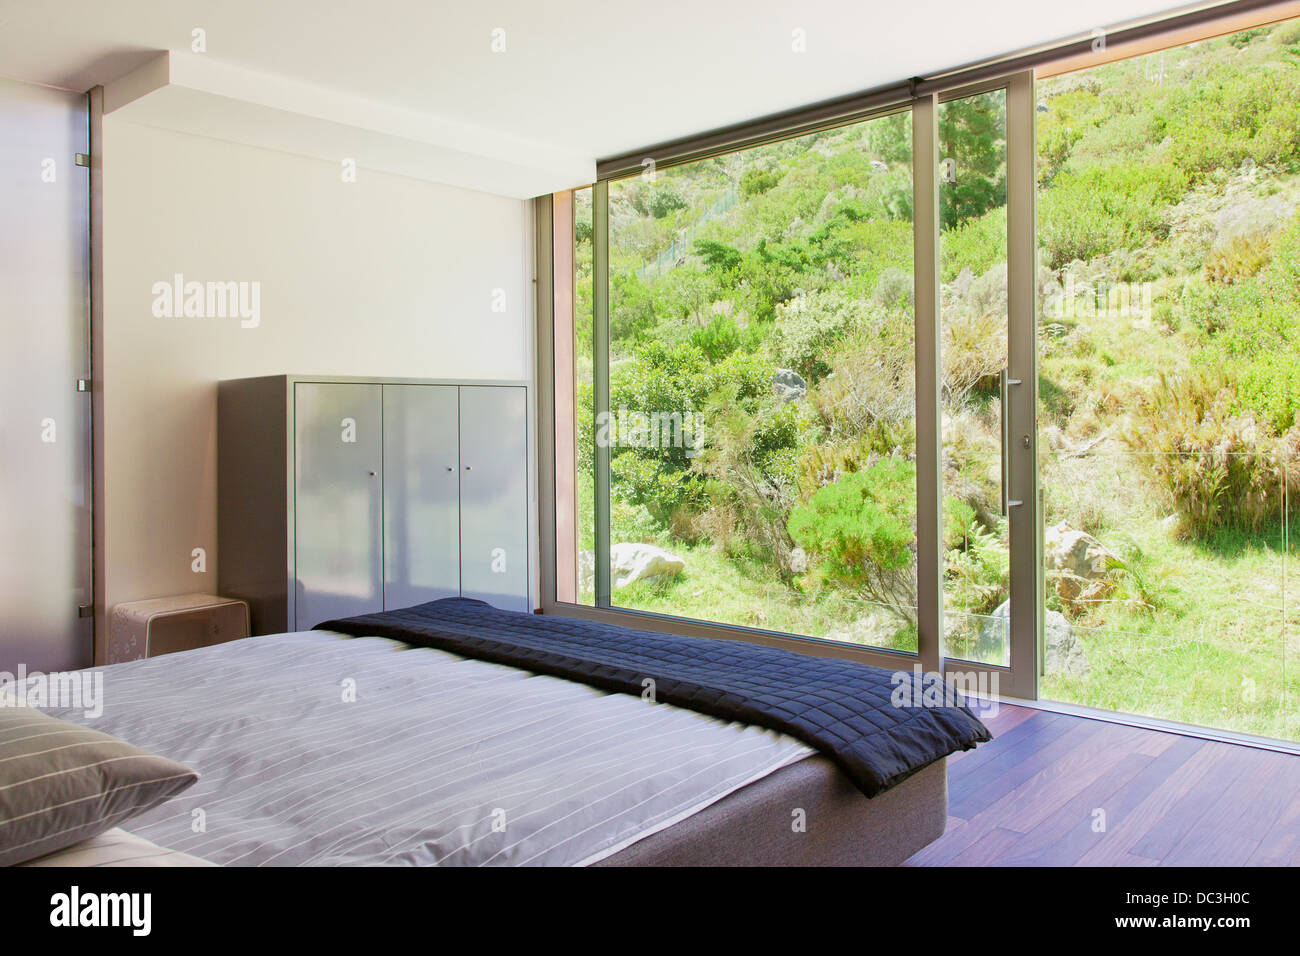 Modern Bedroom With Glass Sliding Doors Stock Photo 59086172 Alamy